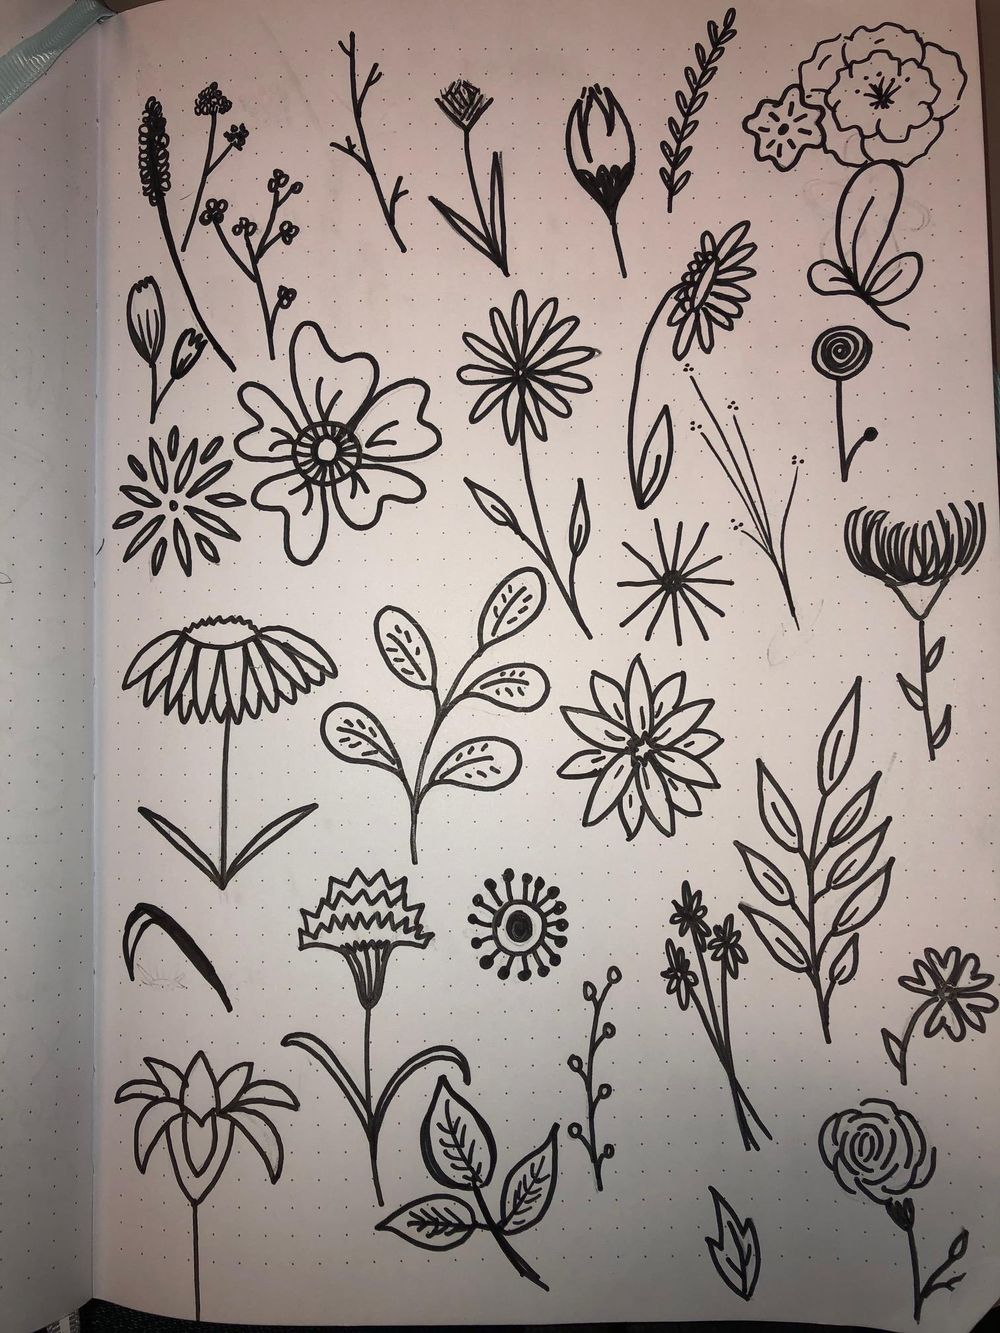 Spring Florals - image 2 - student project